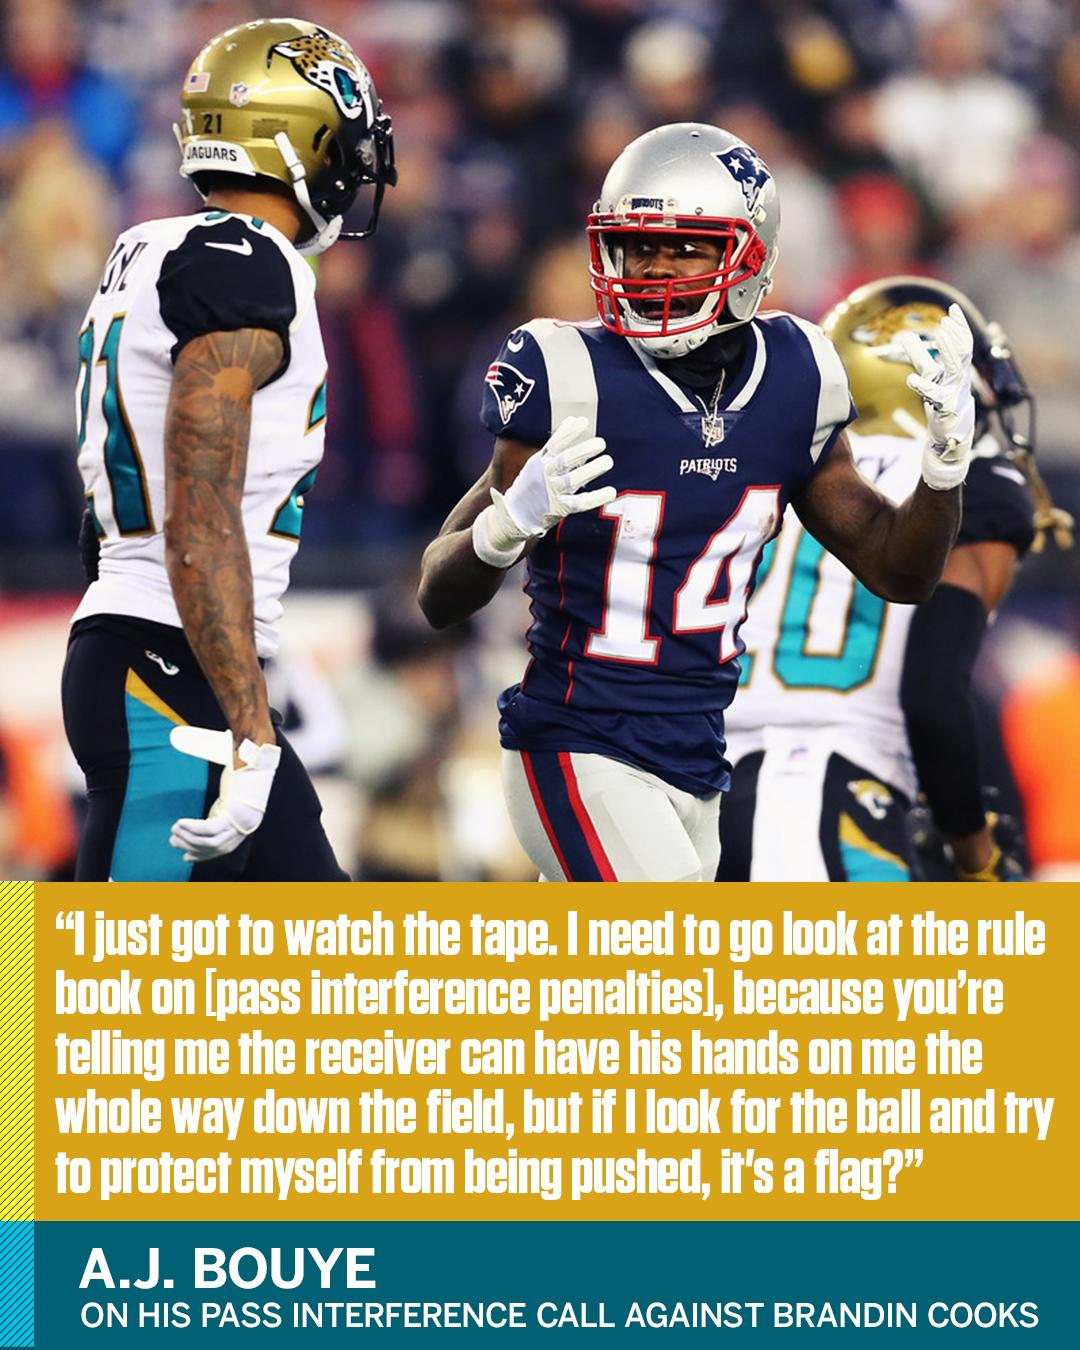 A.J. Bouye took issue with a big call in the Jaguars' loss to the Patriots. https://t.co/o7DOlmlc1T